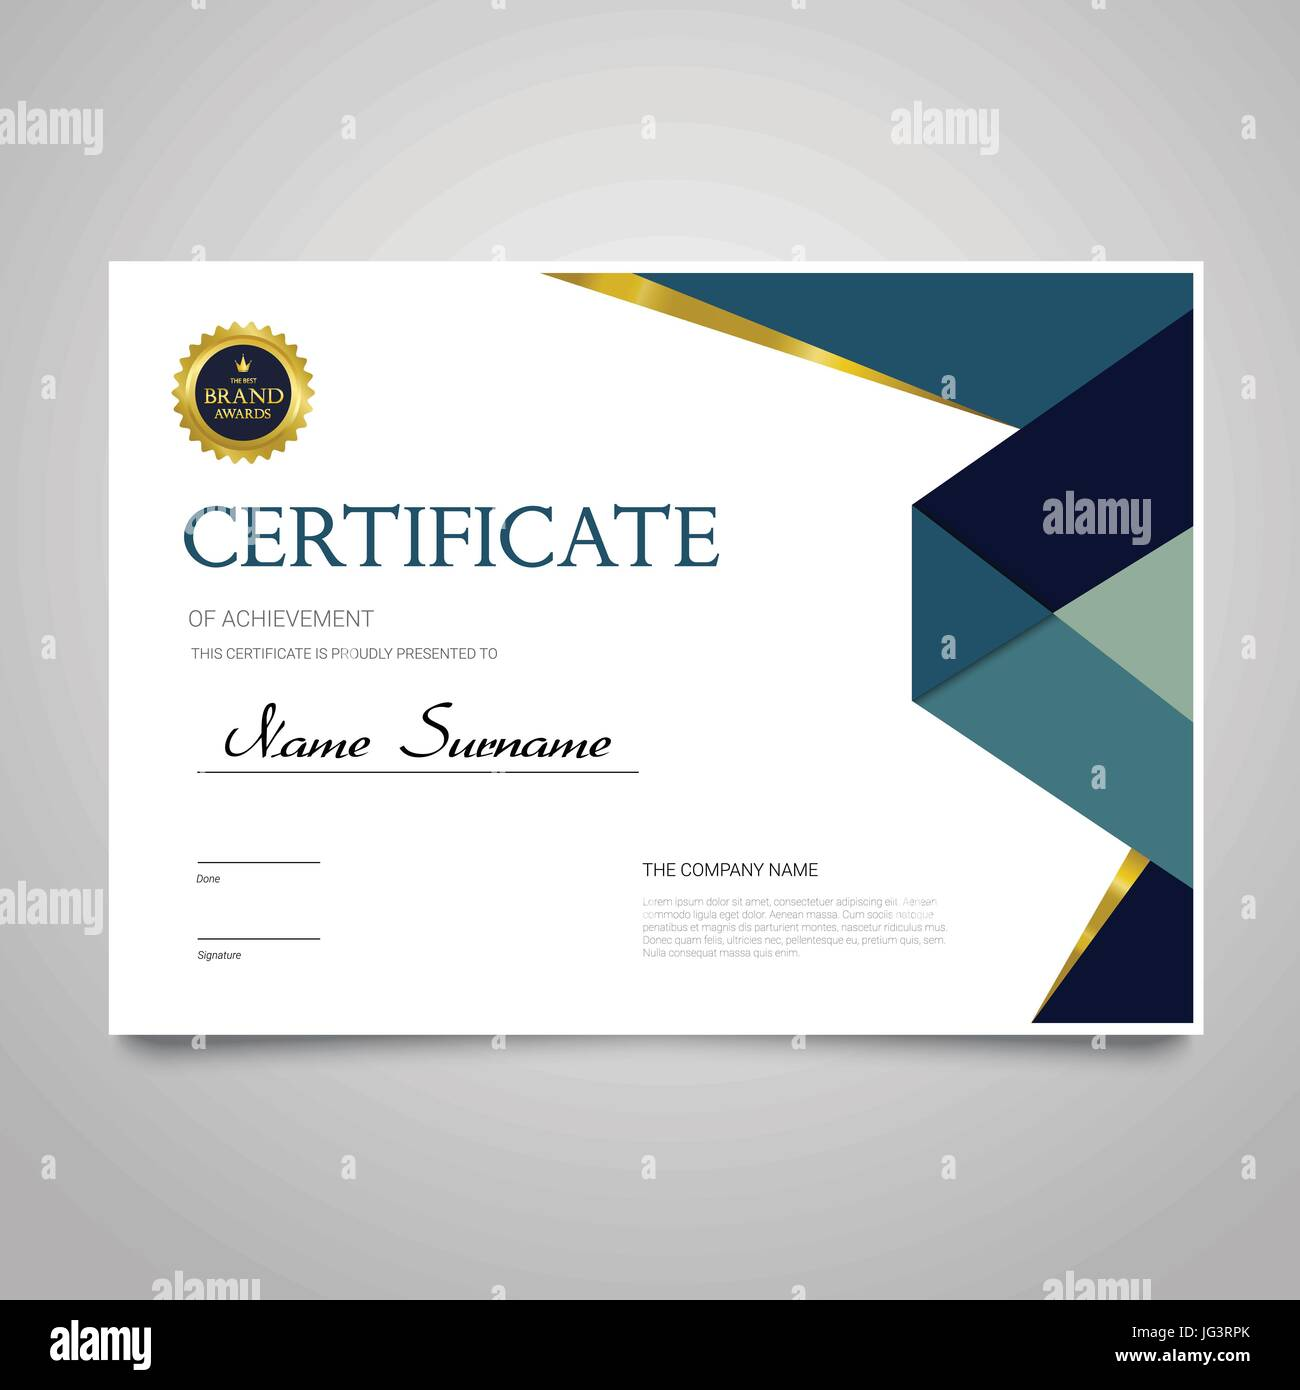 certificate template modern horizontal elegant vector document  certificate template modern horizontal elegant vector document luxury design diploma of achievement appreciation copy space for su